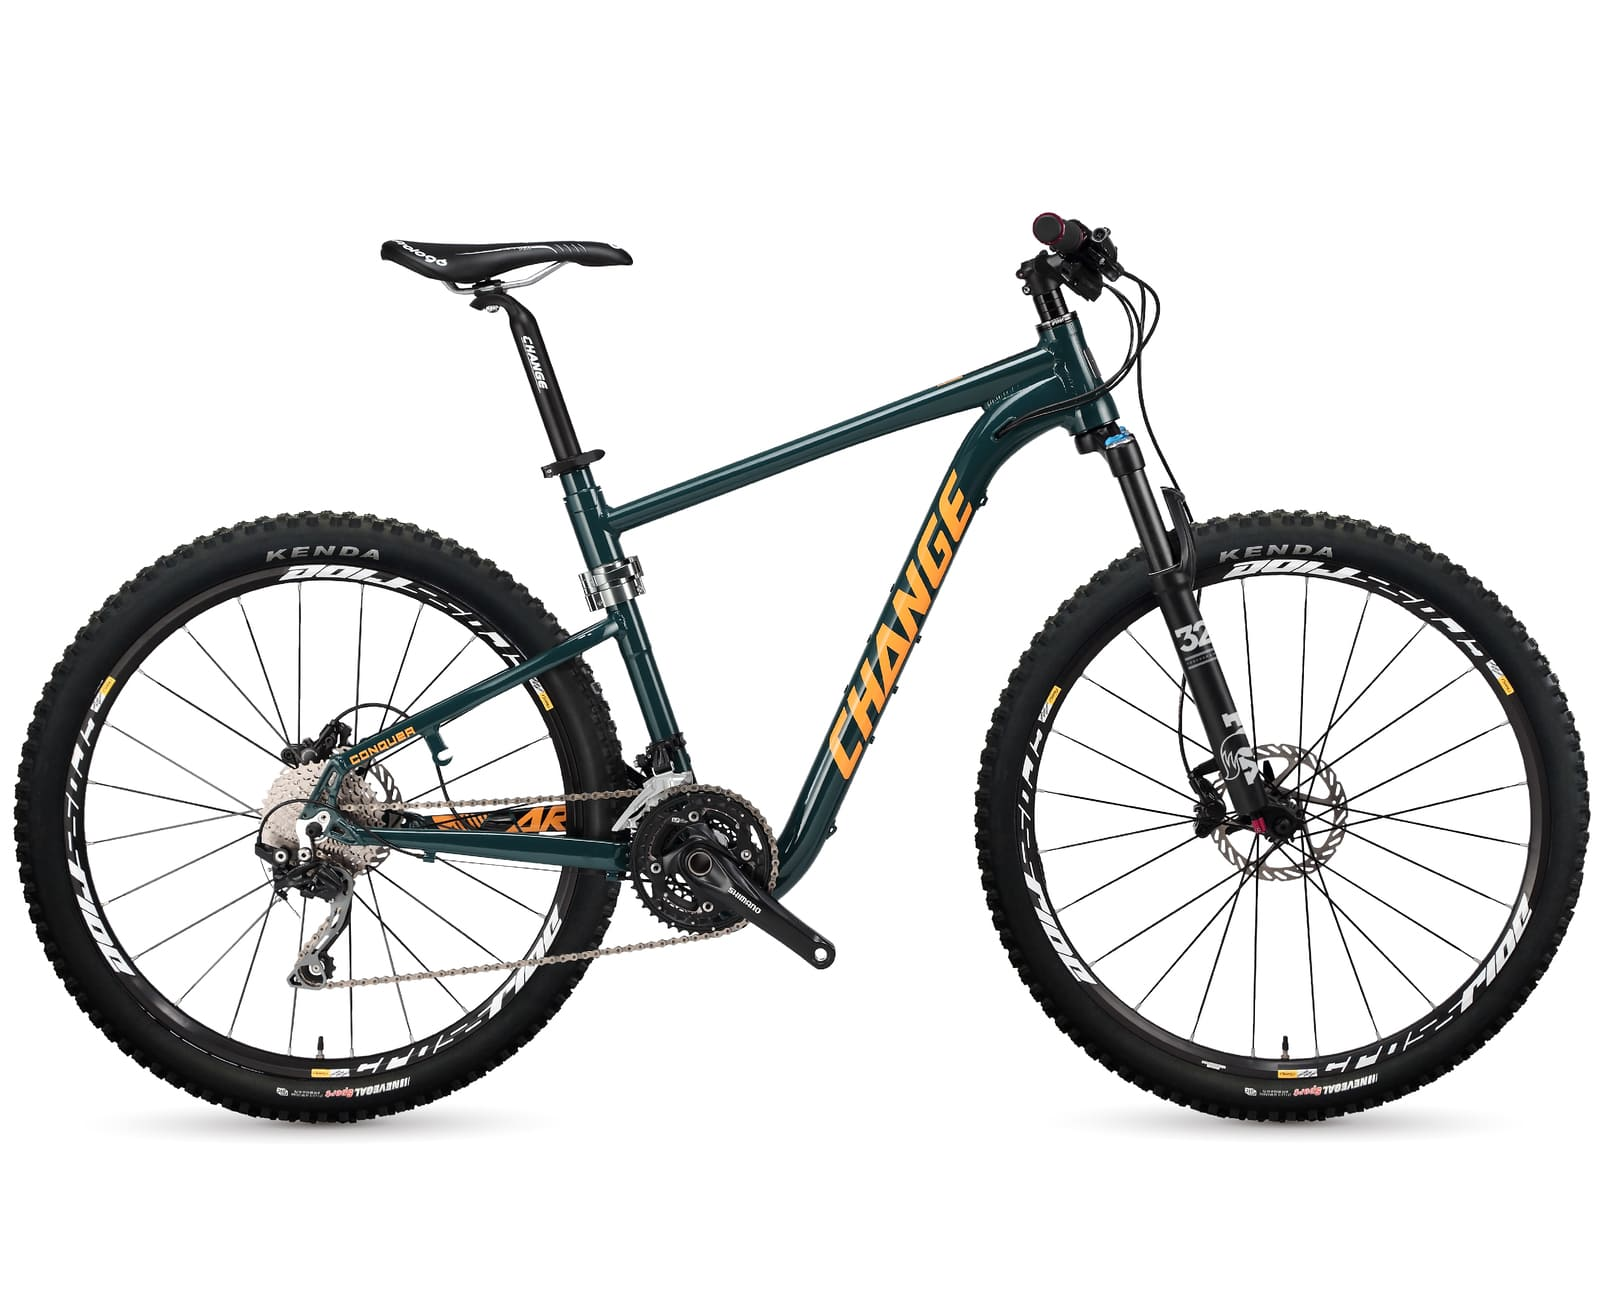 CHANGE 812 performance folding MTB